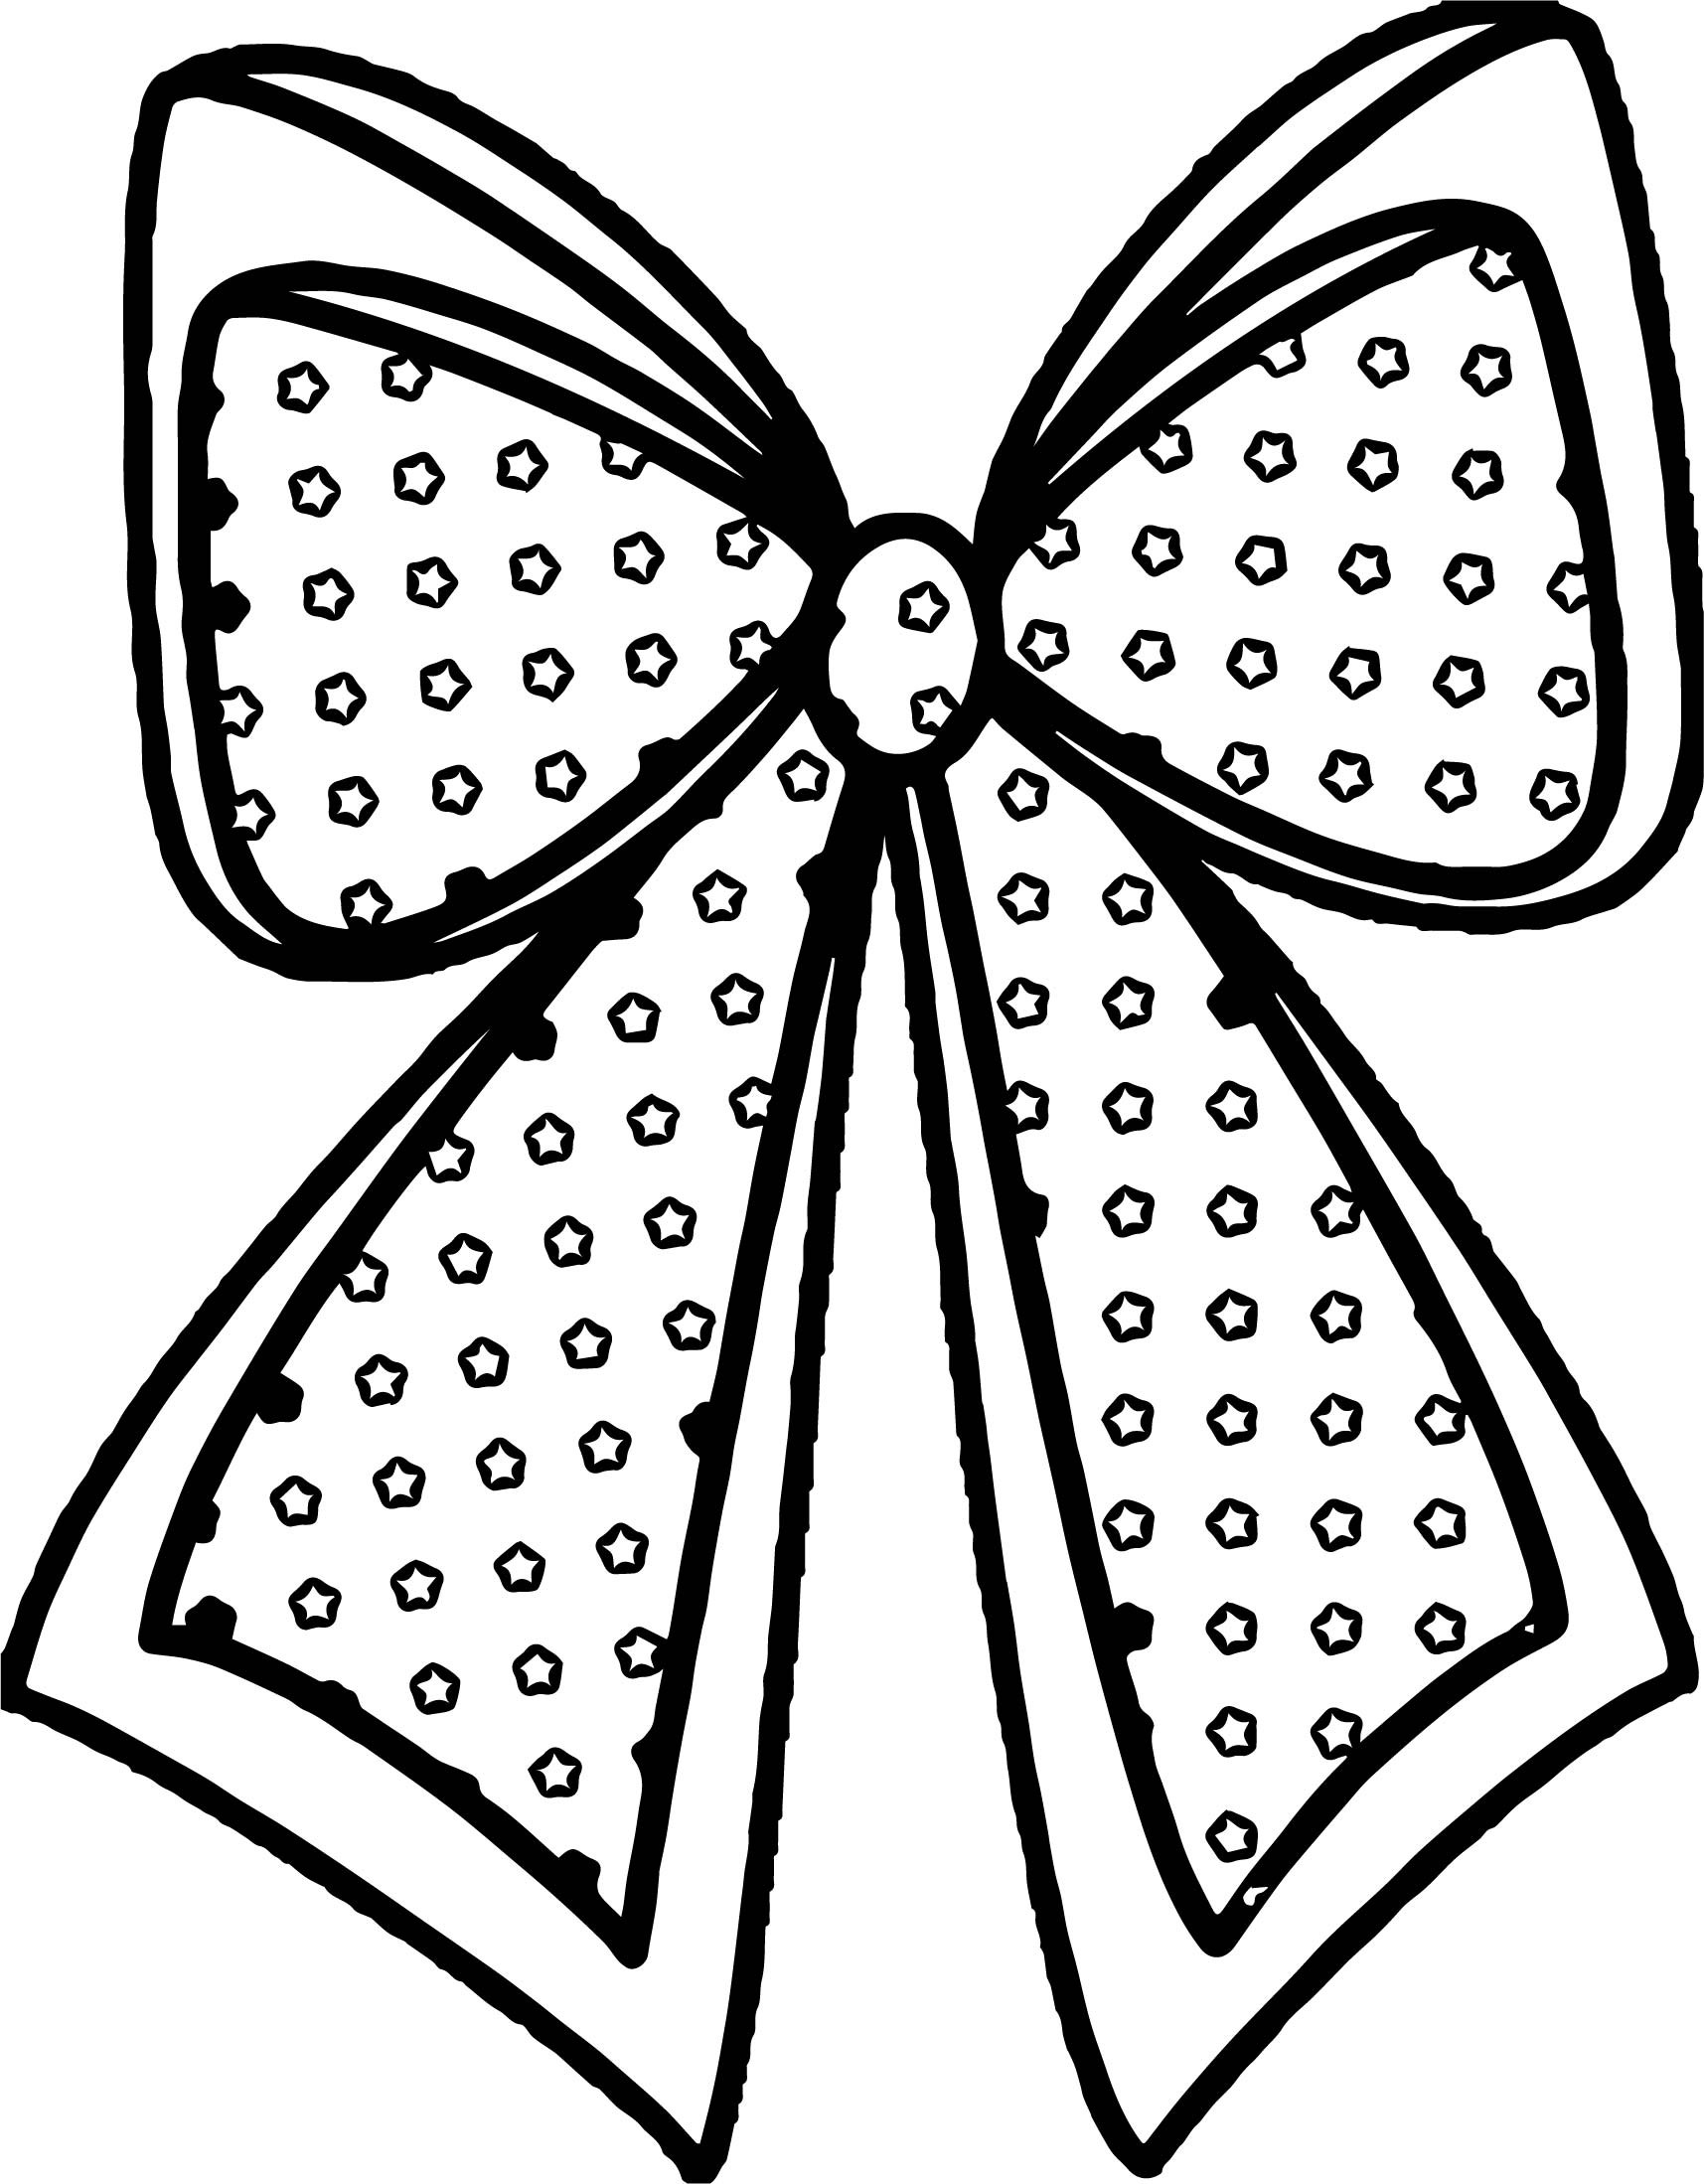 1715x2198 Christmas Bows Coloring Pages Free Draw To Color